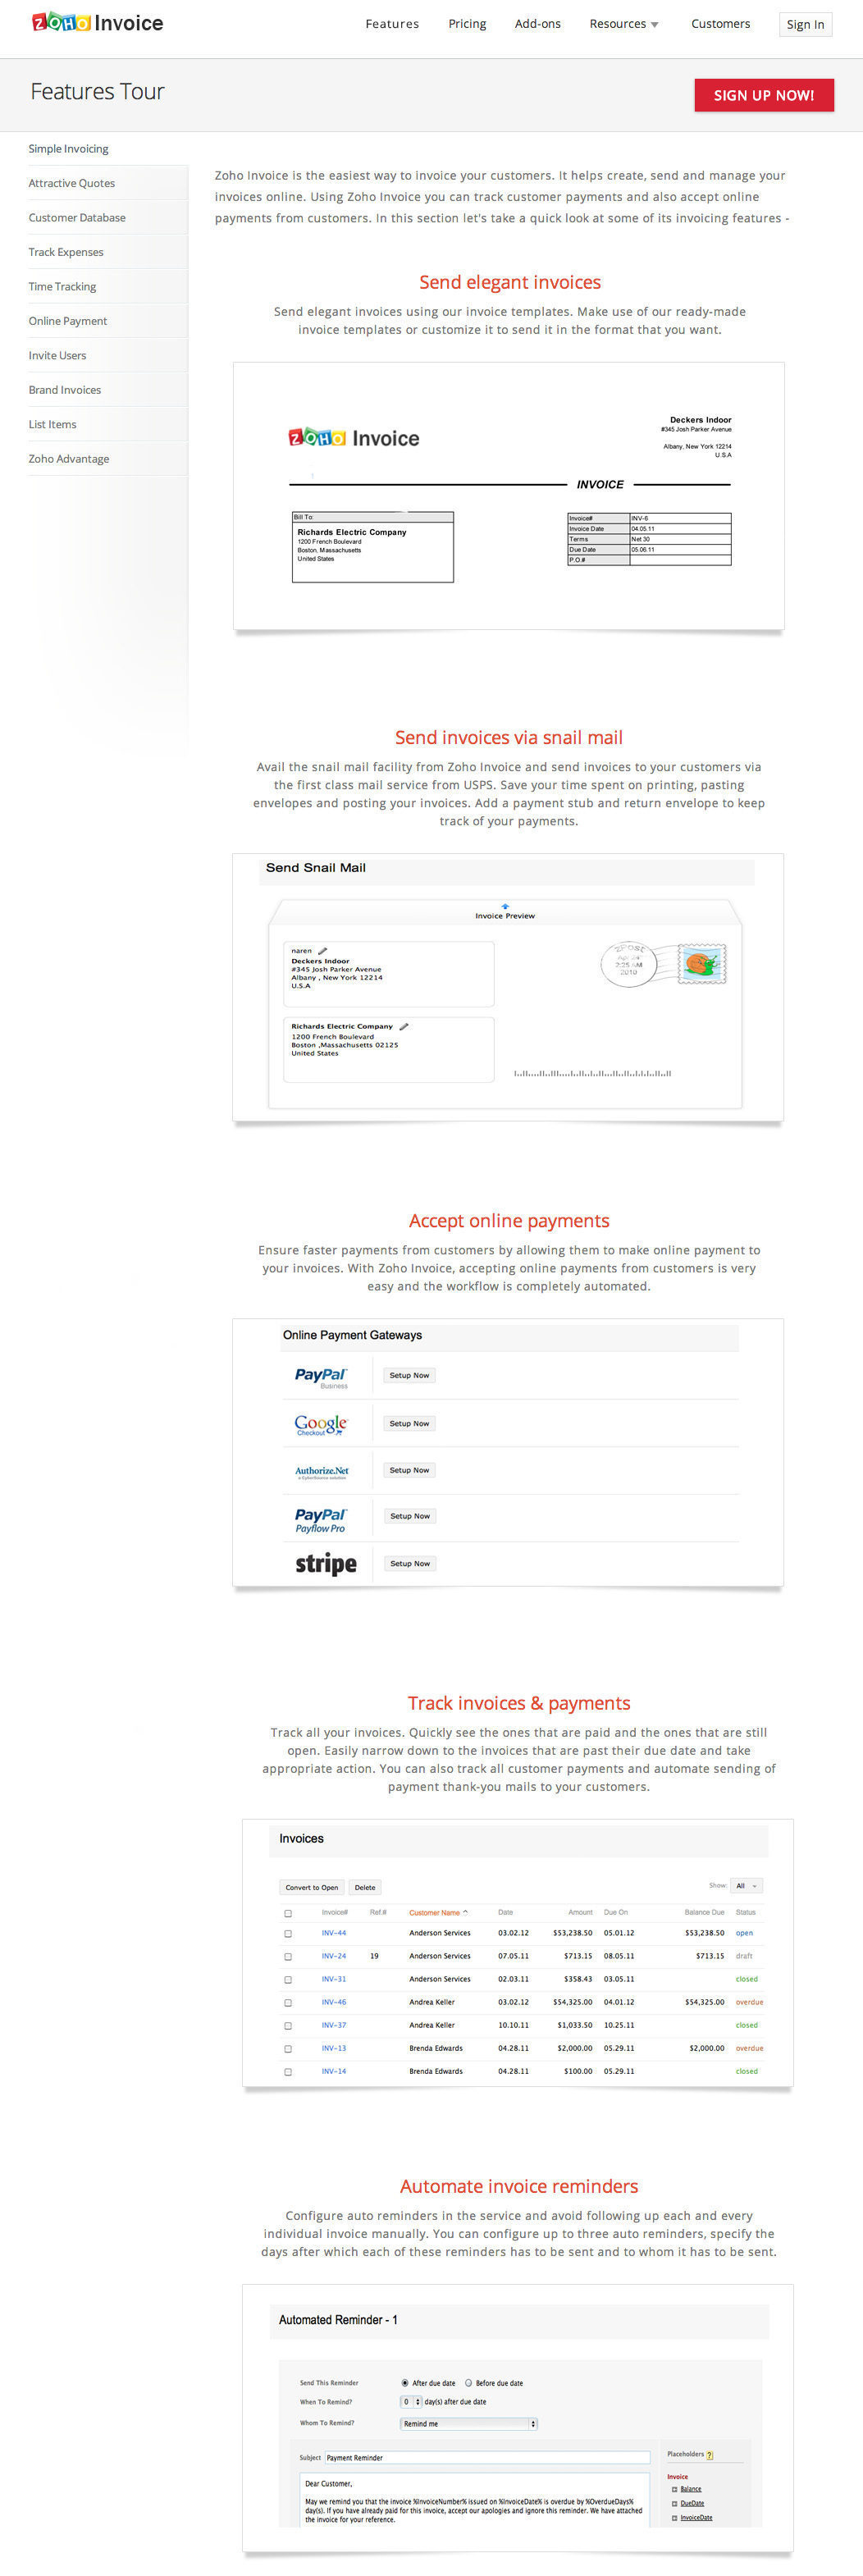 Usdgus  Fascinating Top  Complaints And Reviews About Zoho Invoice With Remarkable Zoho Invoice Pricing Zoho Invoice  Simple Invoicing  With Endearing Create Invoice Template Also Ahs Vendor Invoicing In Addition Example Of An Invoice And Paypal Create Invoice As Well As Invoice Request Additionally Free Invoices Template From Consumeraffairscom With Usdgus  Remarkable Top  Complaints And Reviews About Zoho Invoice With Endearing Zoho Invoice Pricing Zoho Invoice  Simple Invoicing  And Fascinating Create Invoice Template Also Ahs Vendor Invoicing In Addition Example Of An Invoice From Consumeraffairscom